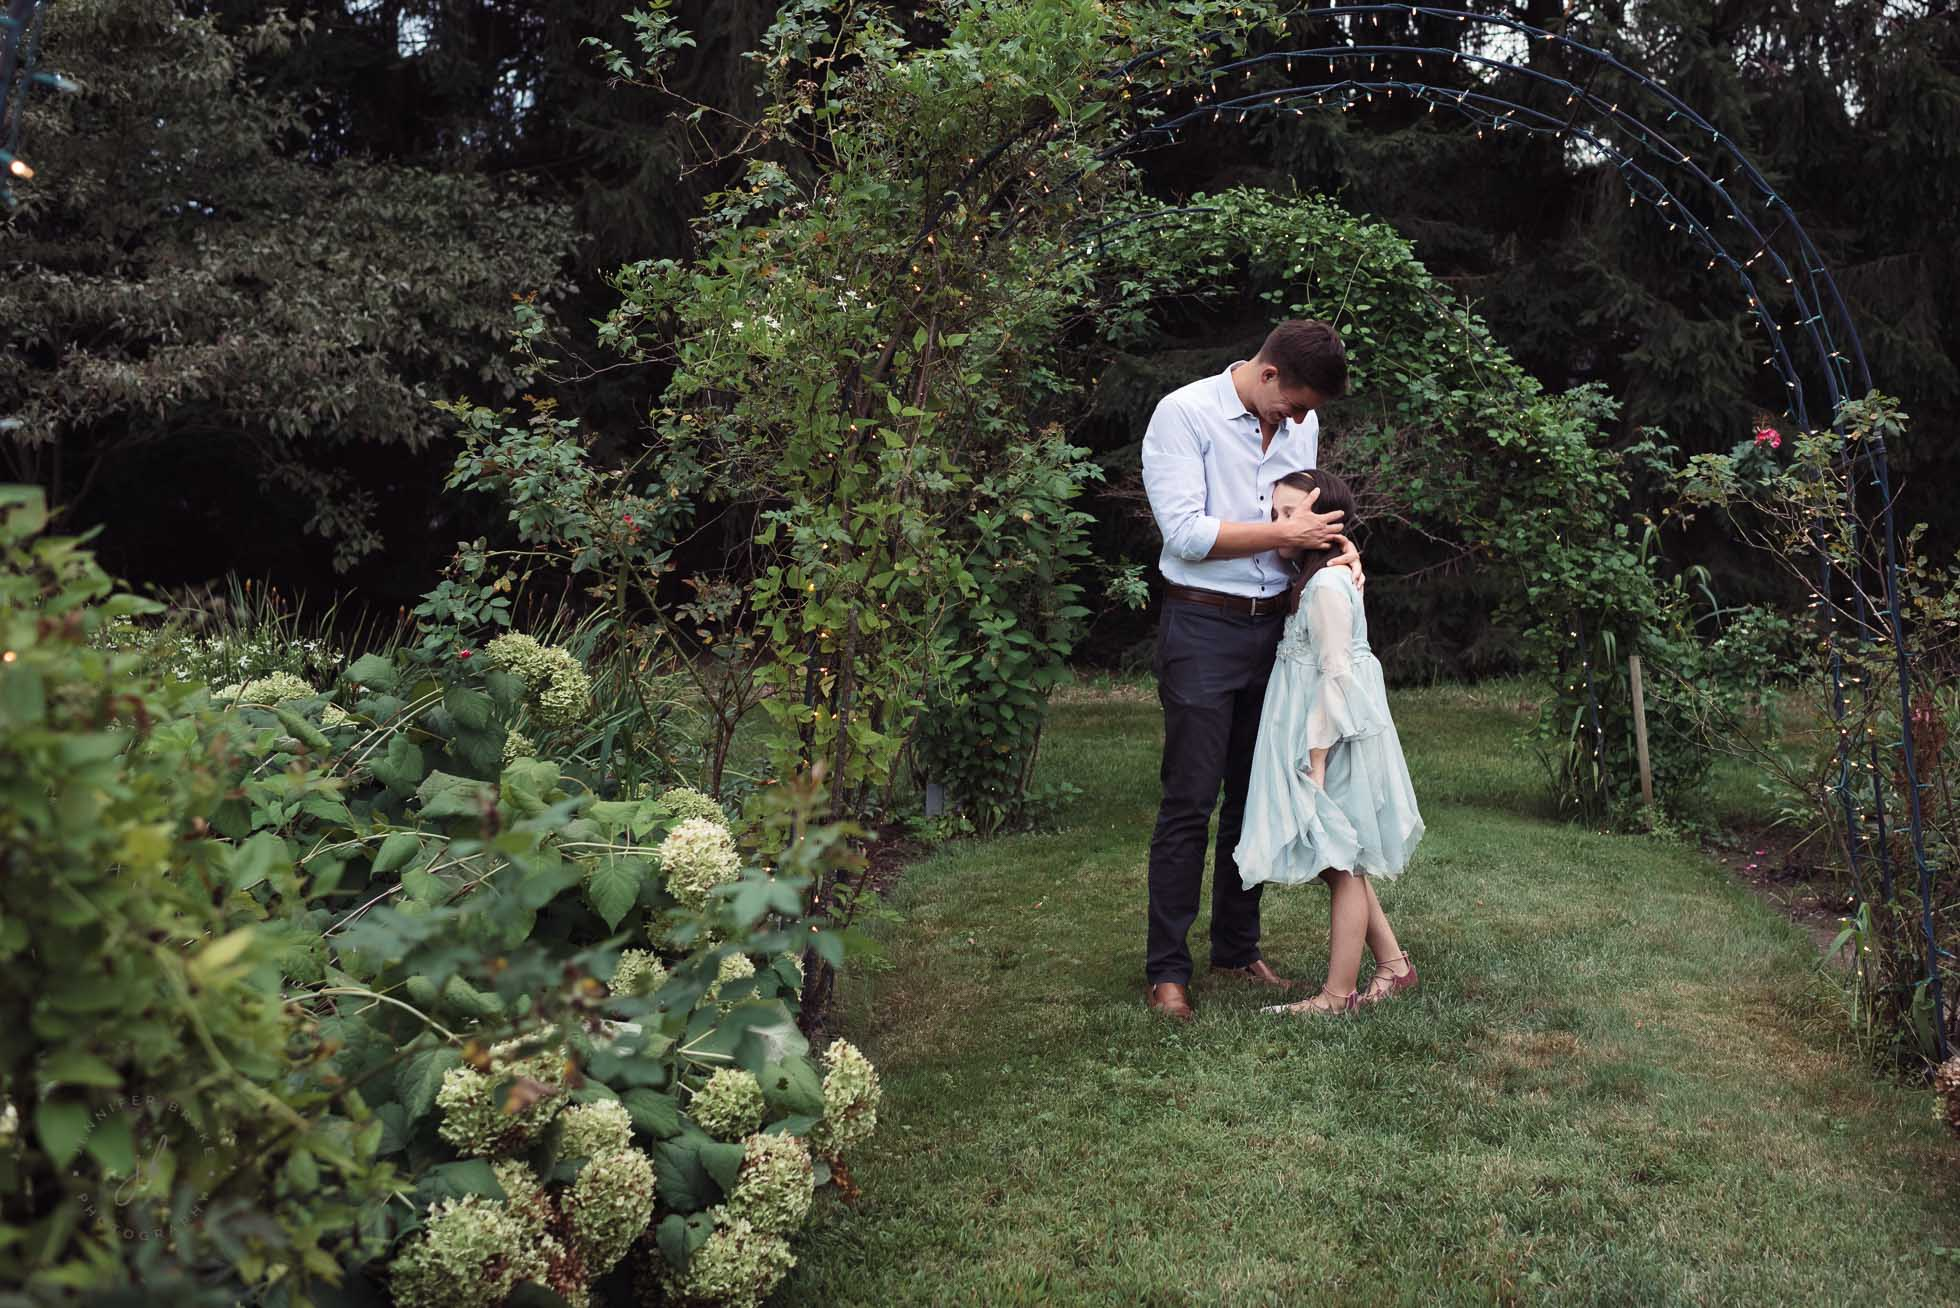 A big brother tenderly embraces his little sister, who adores him. They stand under arches of arbors and lights in a garden in late summer.